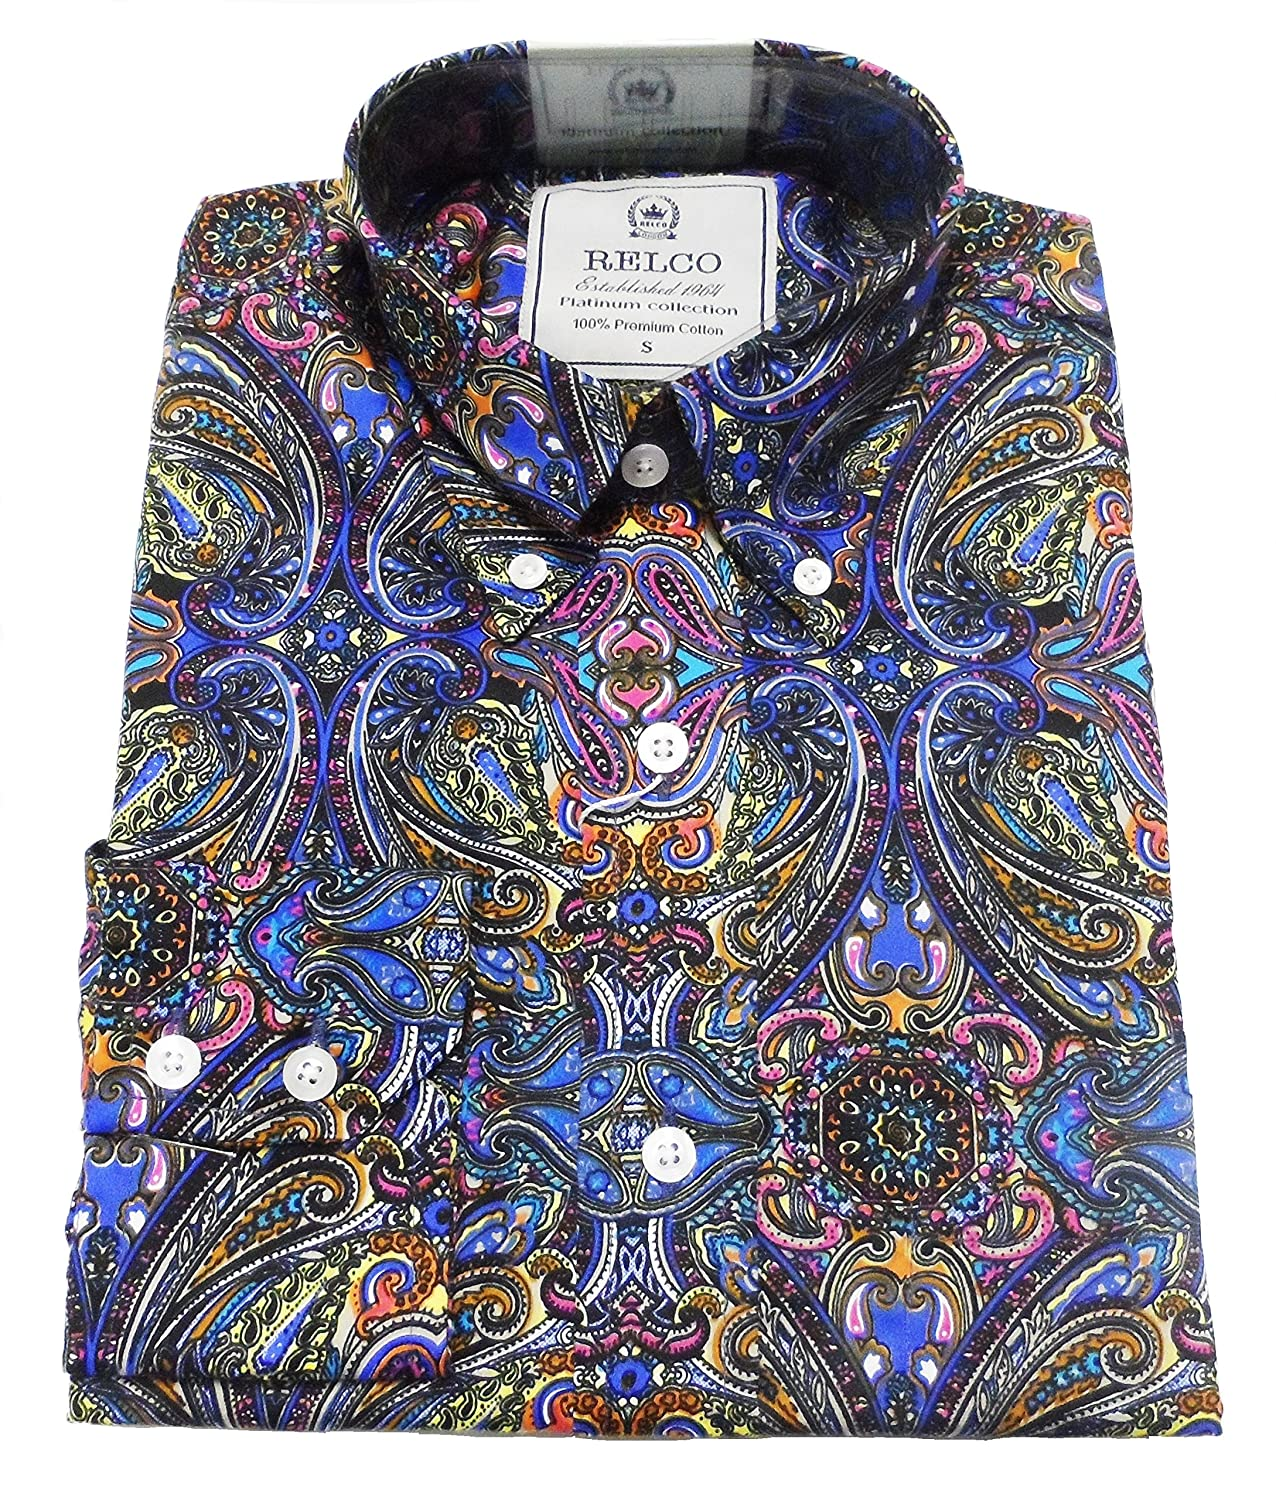 Relco Paisley Shirt Purple Long Sleeve Button Down Collar Mod Vintage Retro Mens